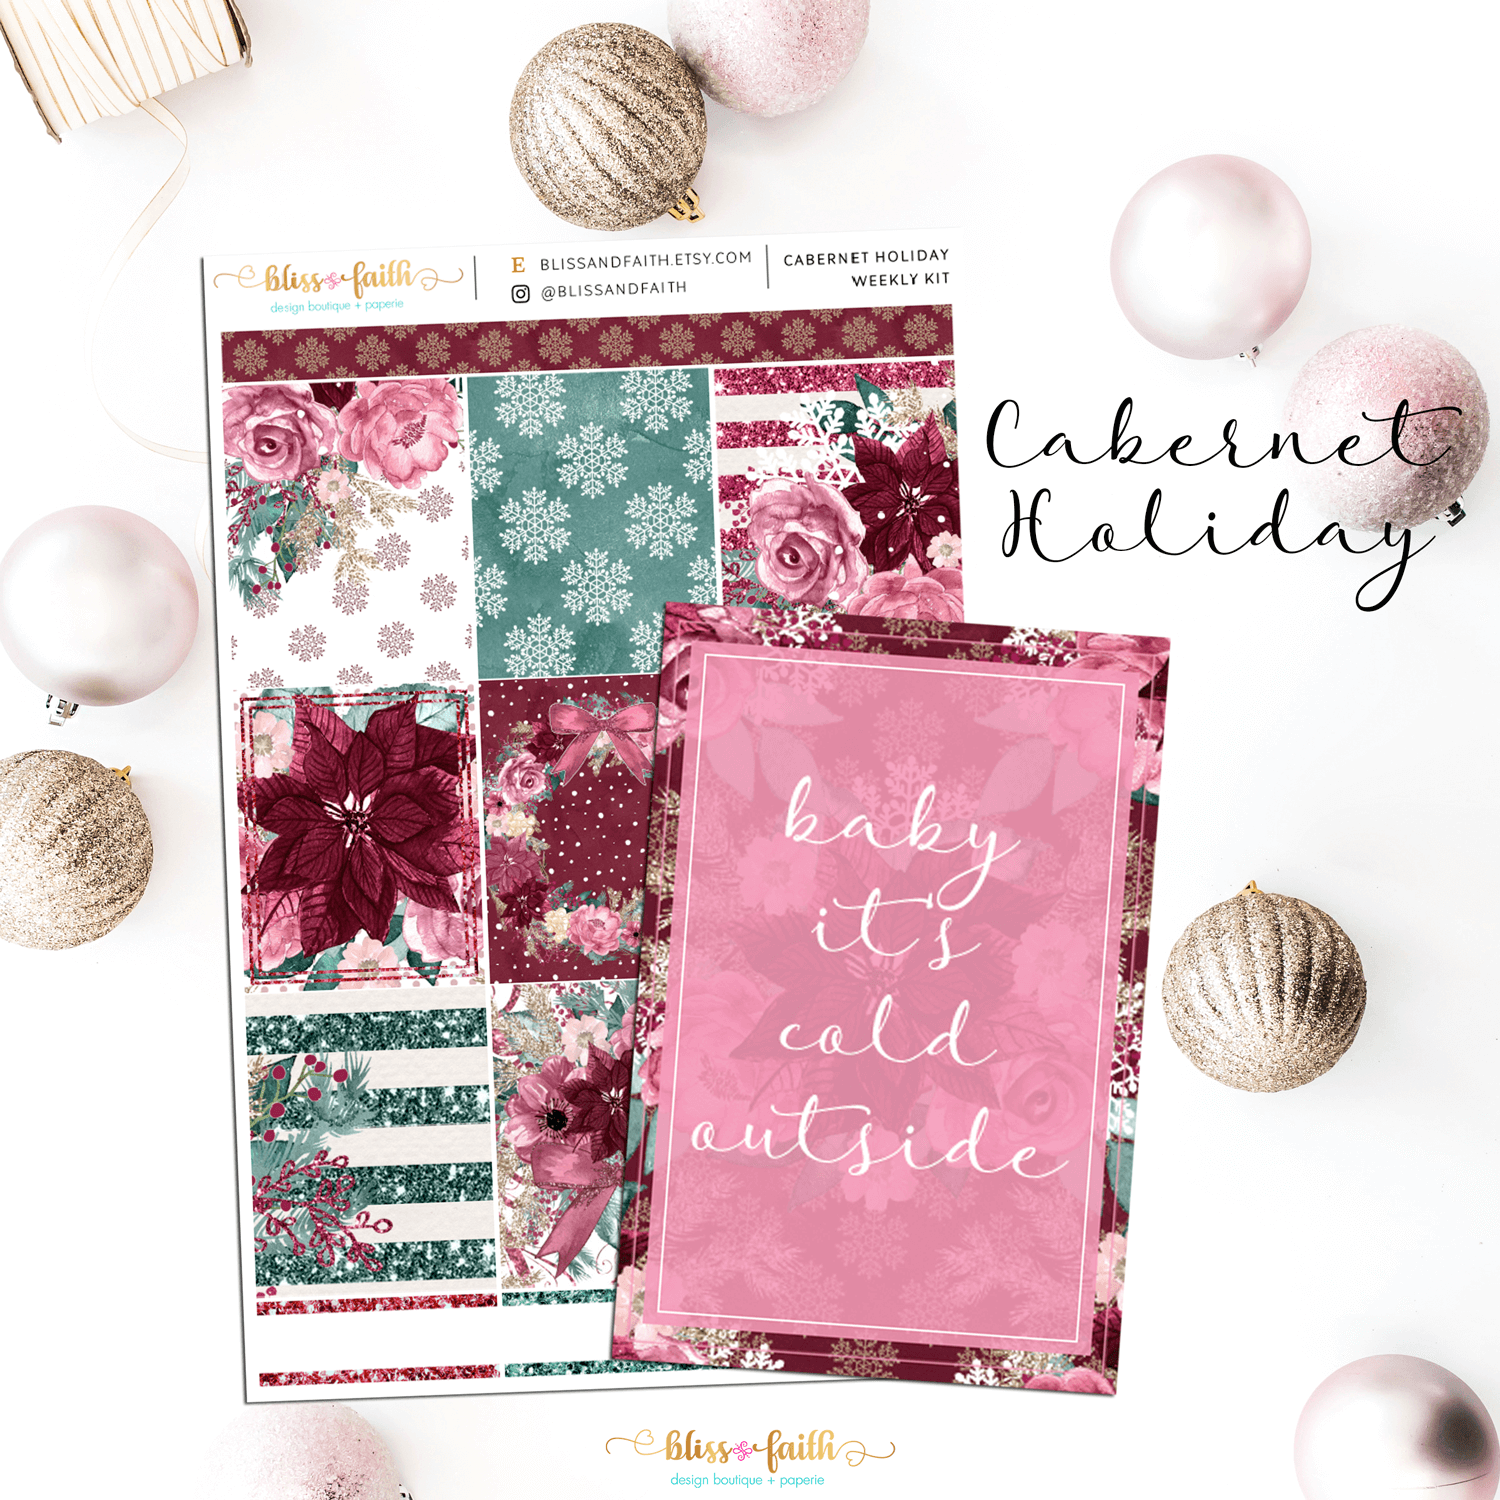 Cabernet Holiday Weekly Sticker Kit | shop.blissandfaith.com